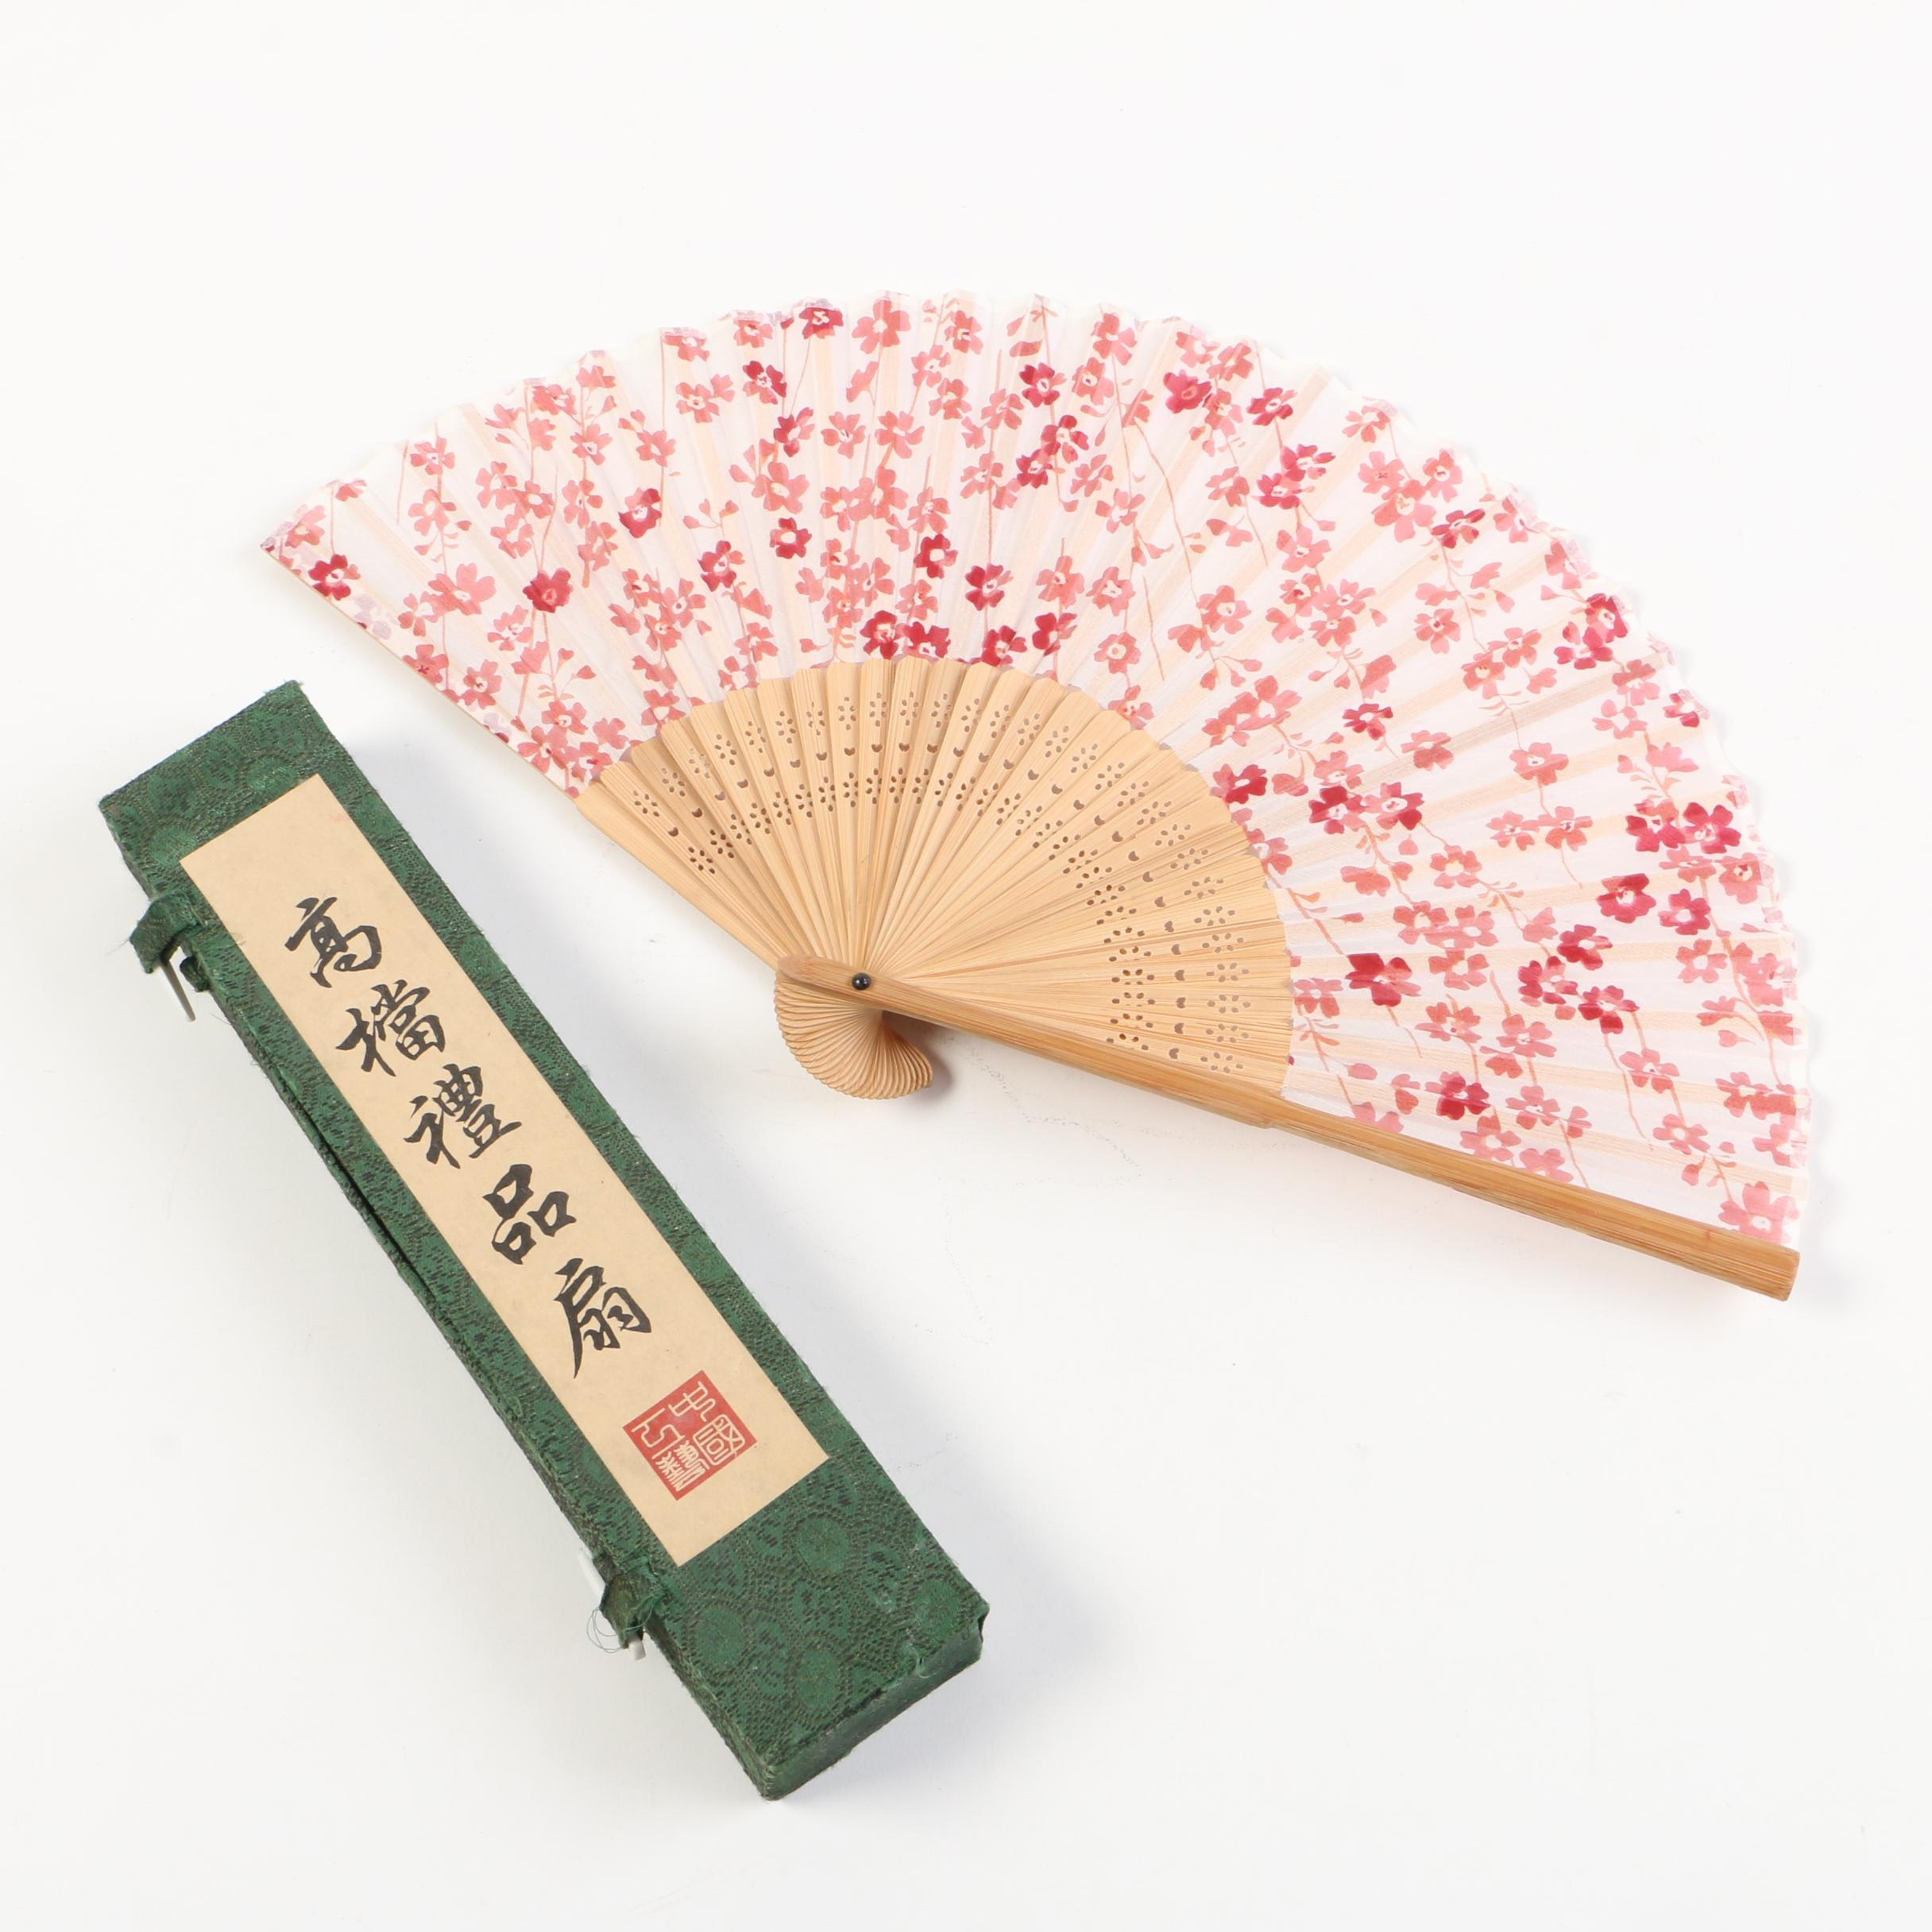 Chinese Floral Folding Hand Fan in Decorative Box